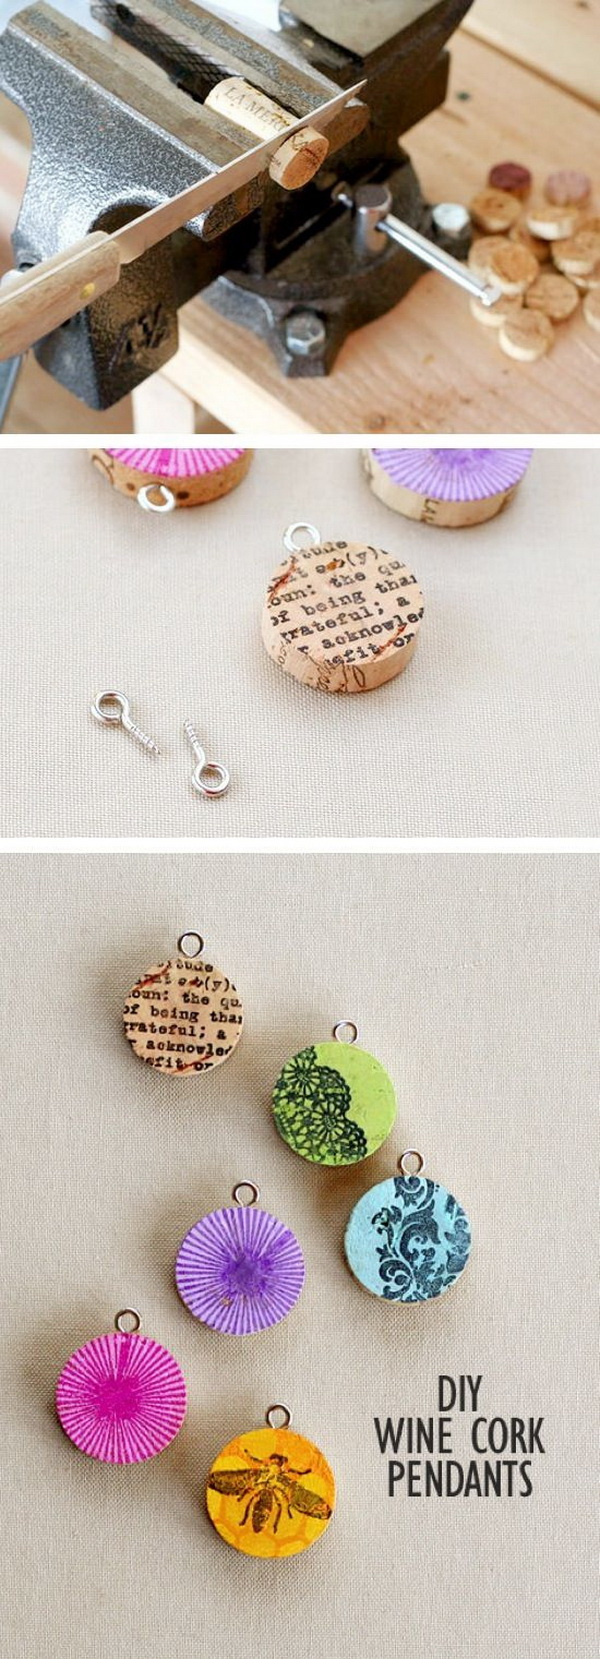 DIY Wine Cork Pendants.